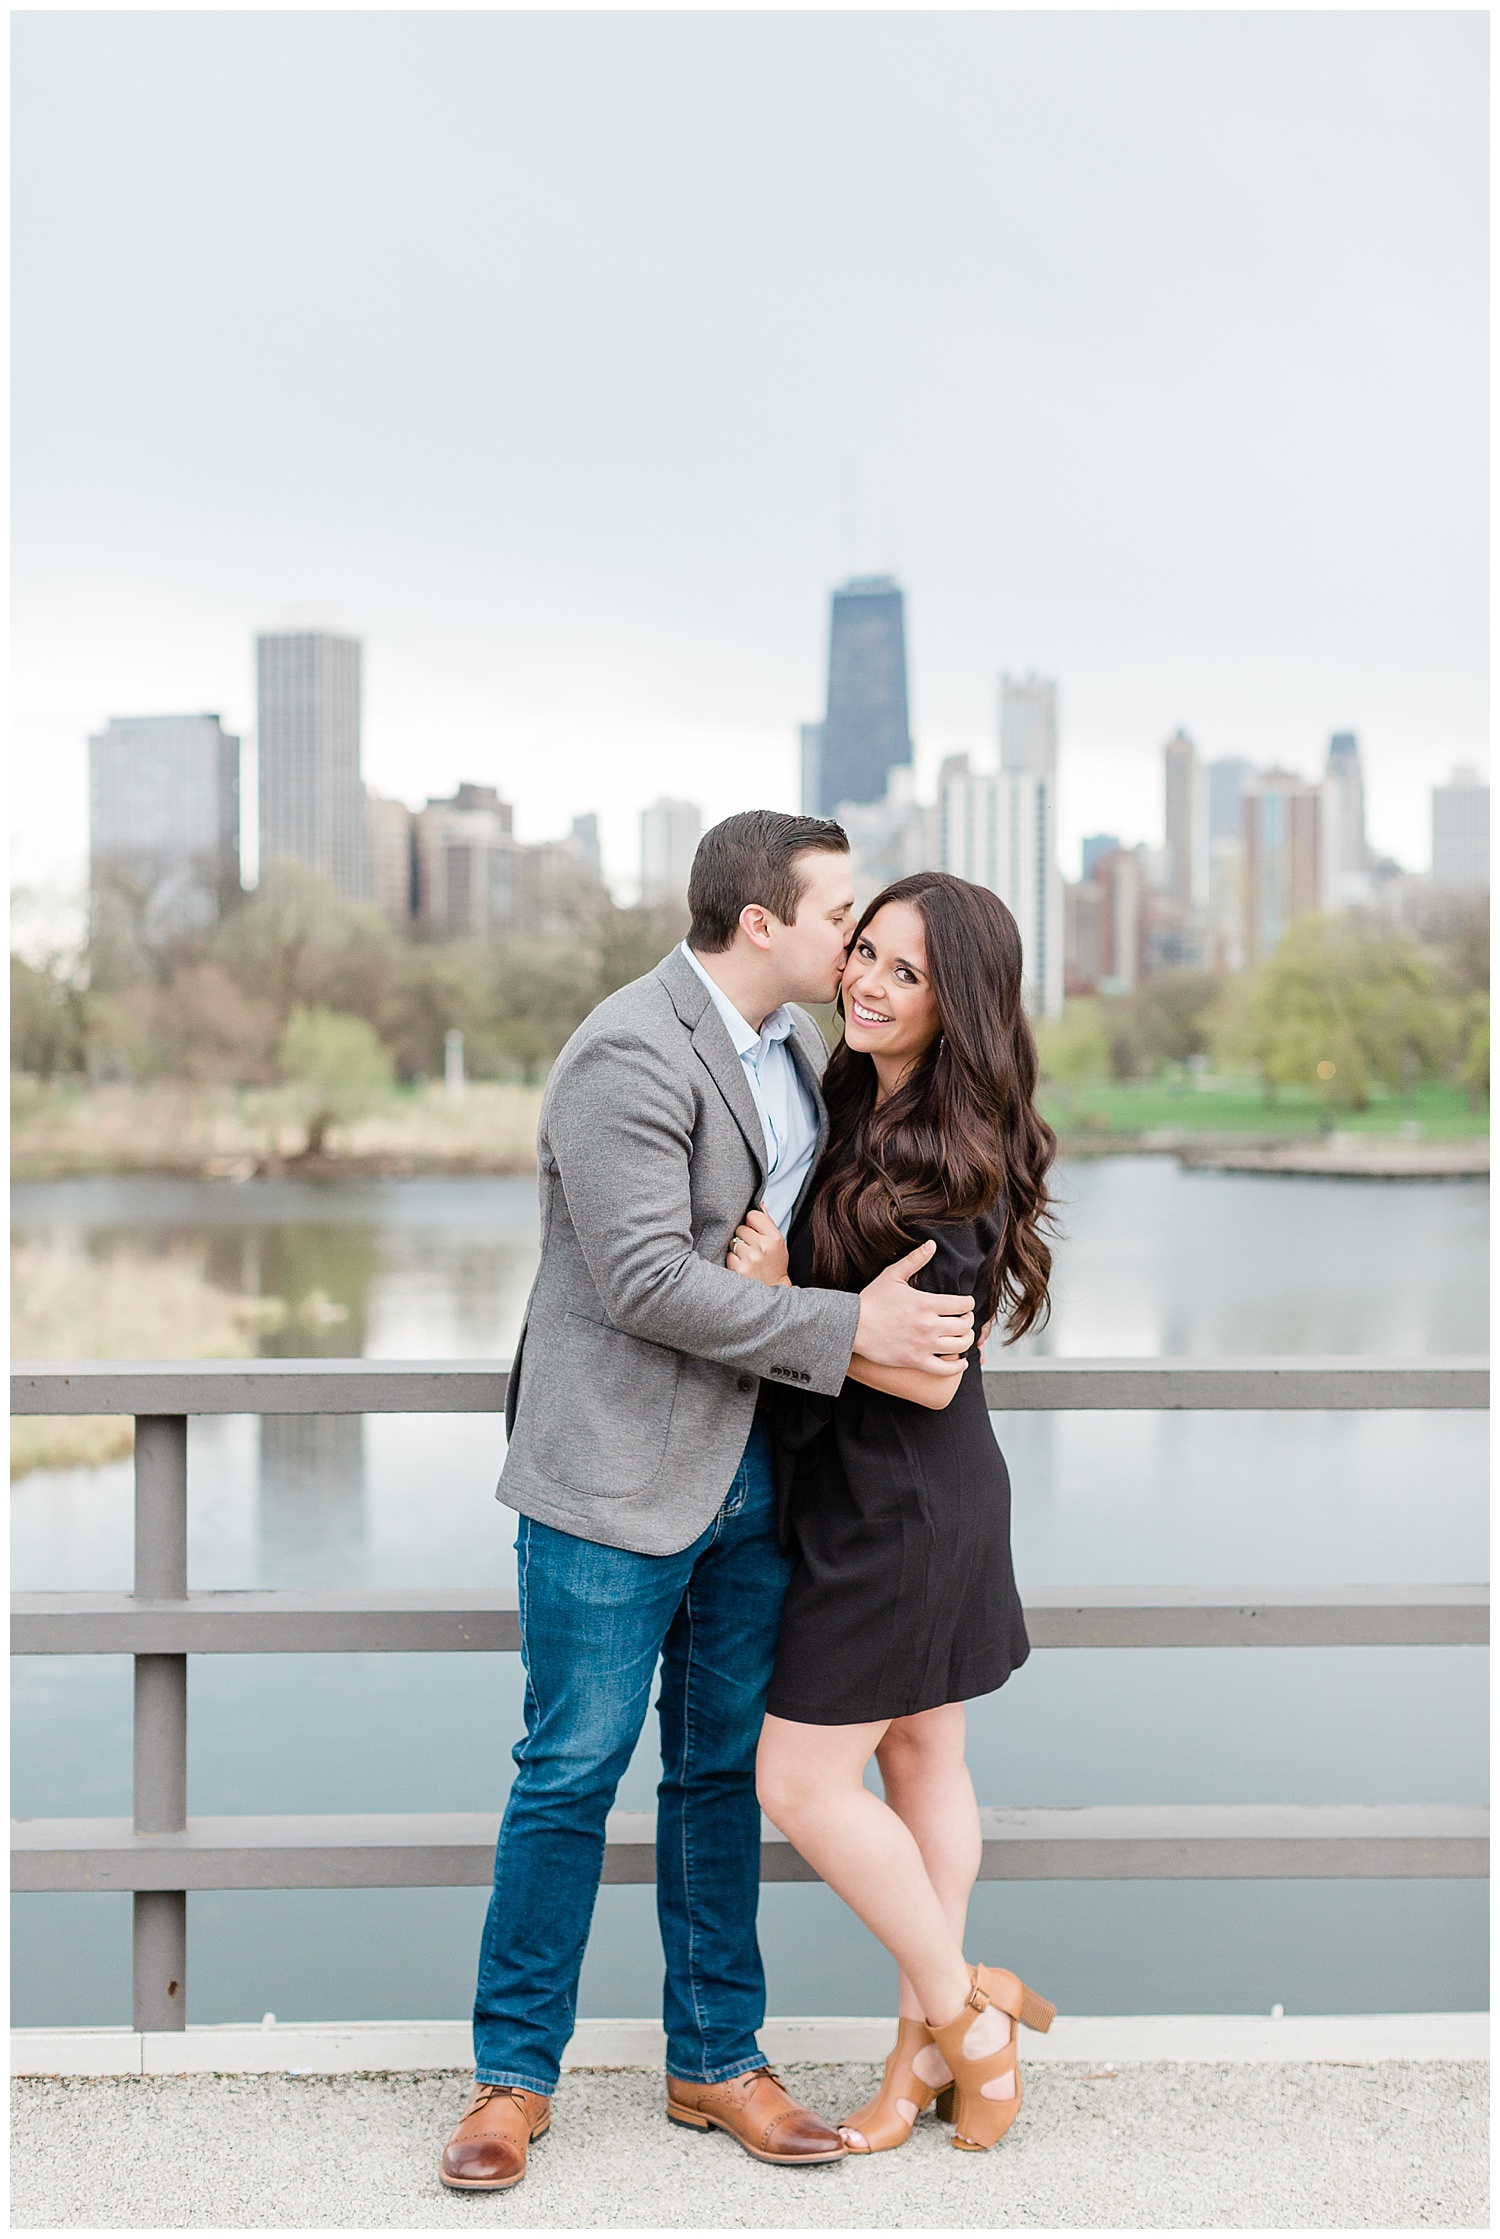 classic-downtown-chicago-engagement-session-kristen-cloyd-photography_0014.jpg